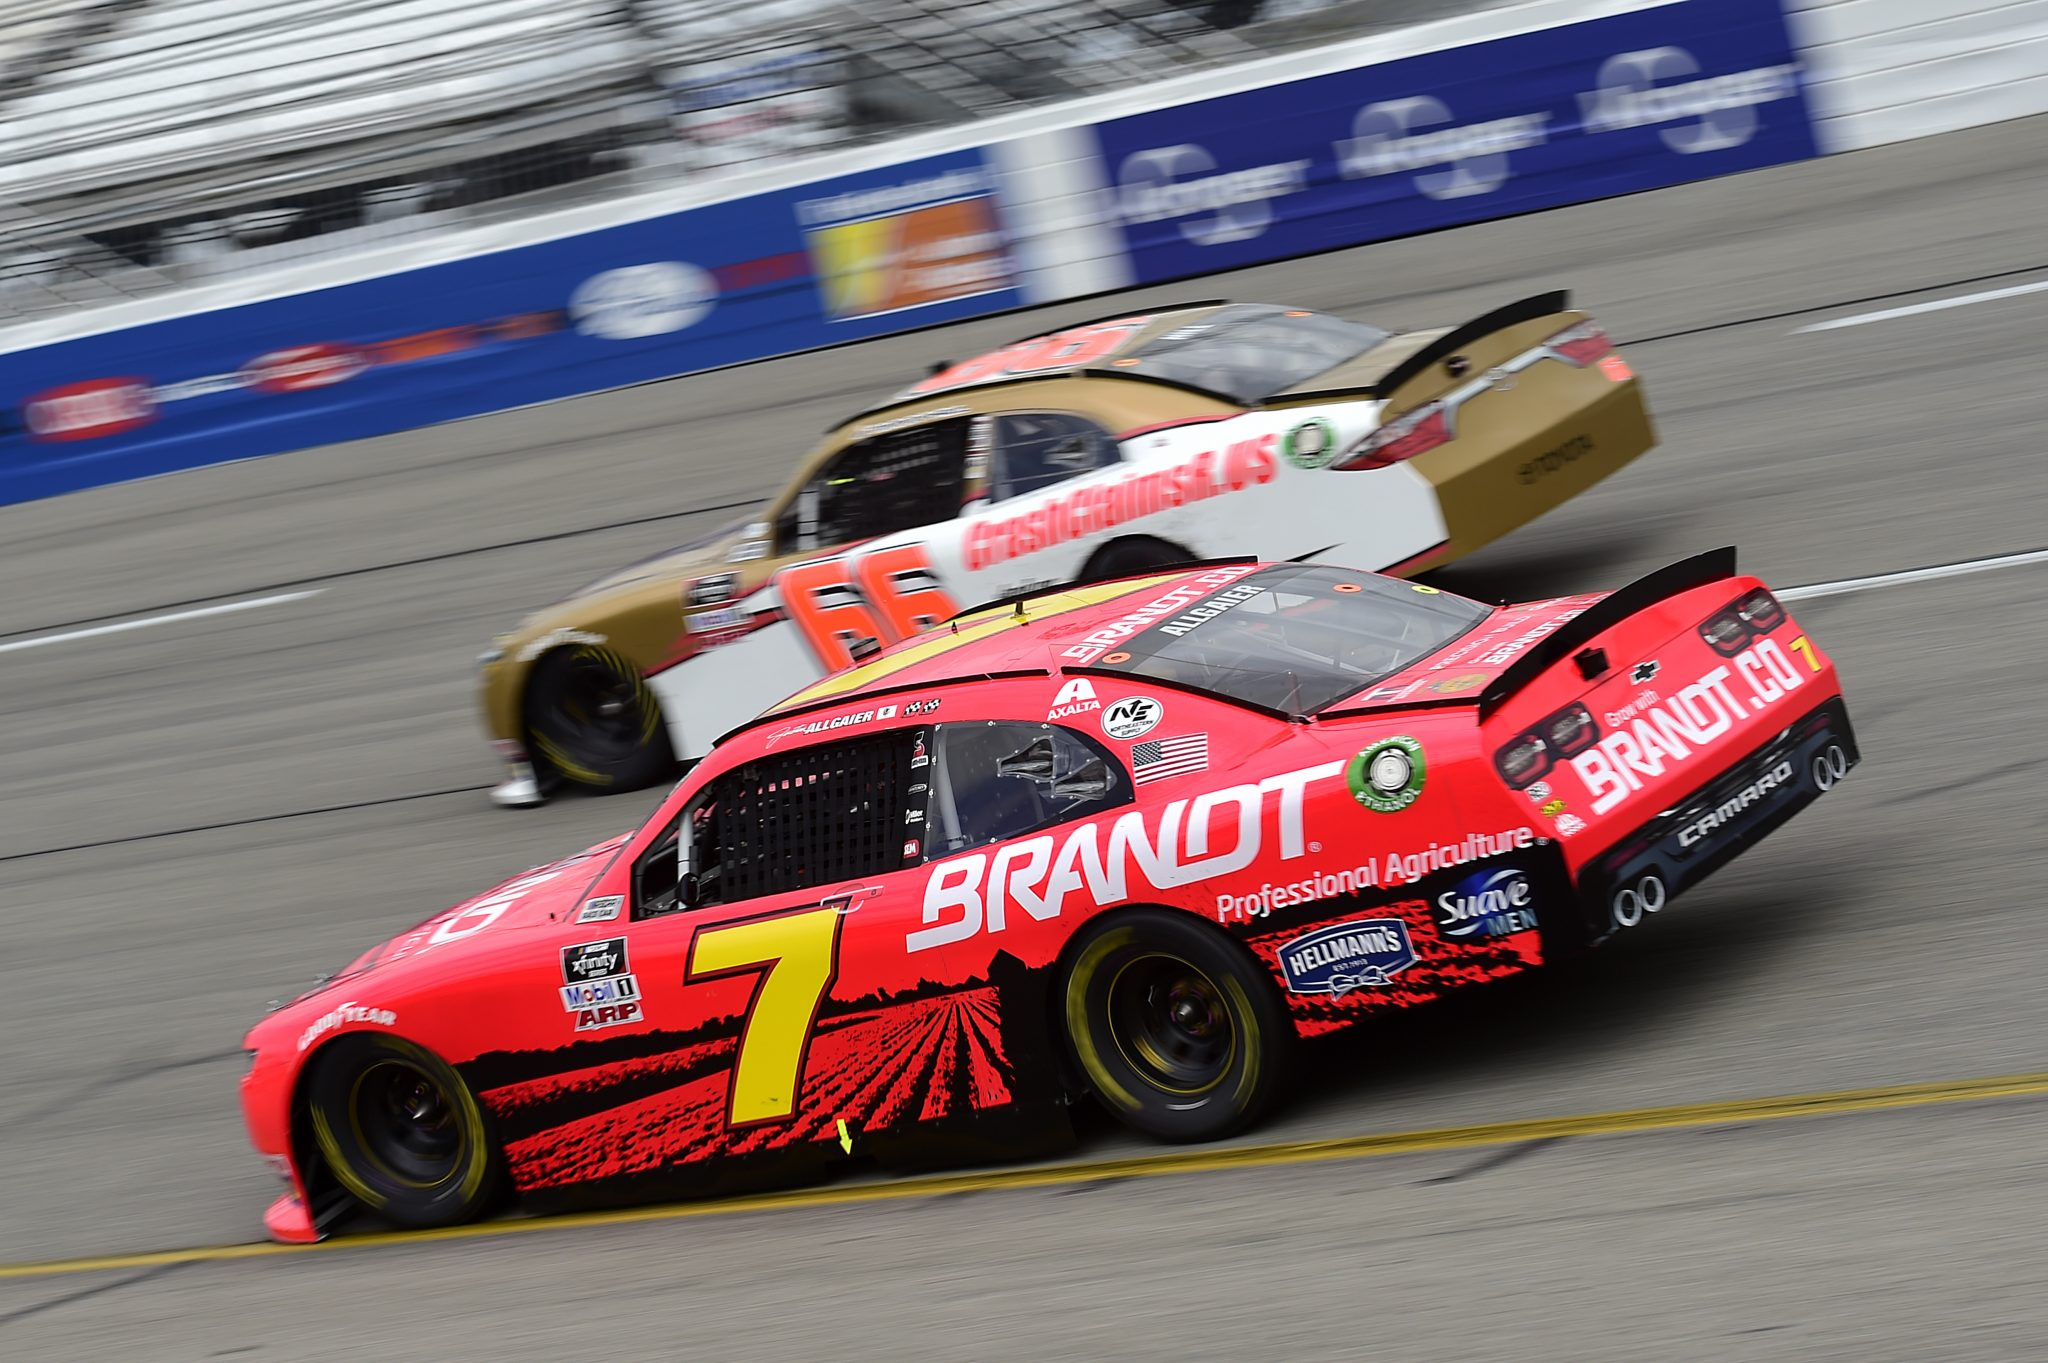 RICHMOND, VIRGINIA - SEPTEMBER 12: Justin Allgaier, driver of the #7 BRANDT Chevrolet, and Timmy Hill, driver of the #66 CRASHCLAIMSR.US Toyota, race during the NASCAR Xfinity Series Virginia is for Racing Lovers 250 at Richmond Raceway on September 12, 2020 in Richmond, Virginia. (Photo by Jared C. Tilton/Getty Images) | Getty Images